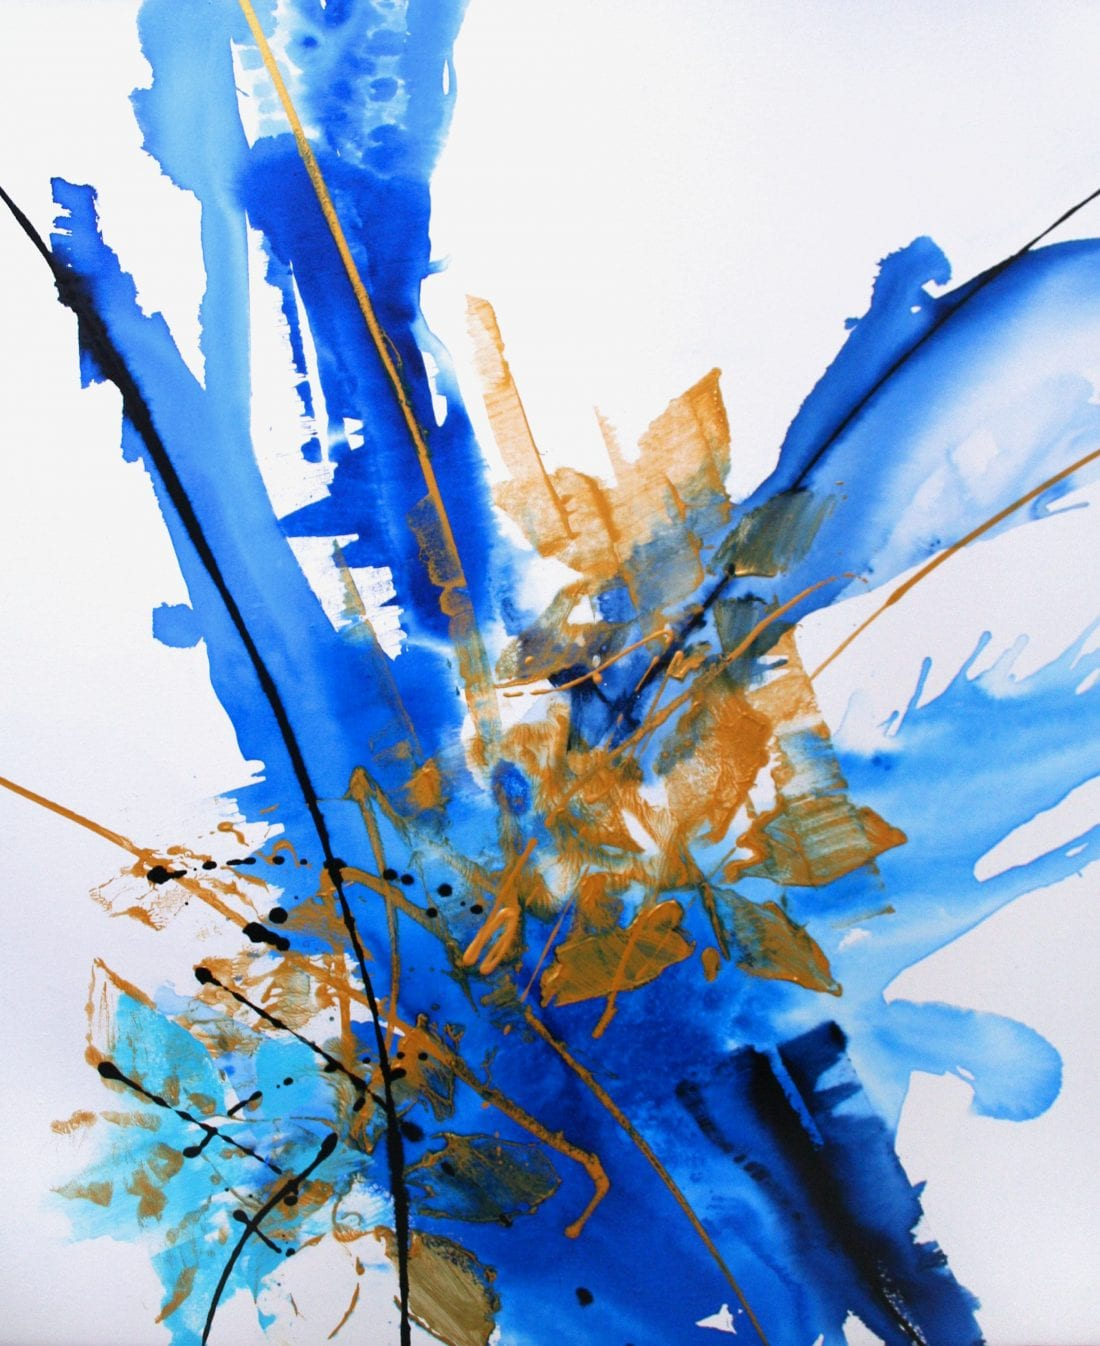 Into the Blue 42 x 50